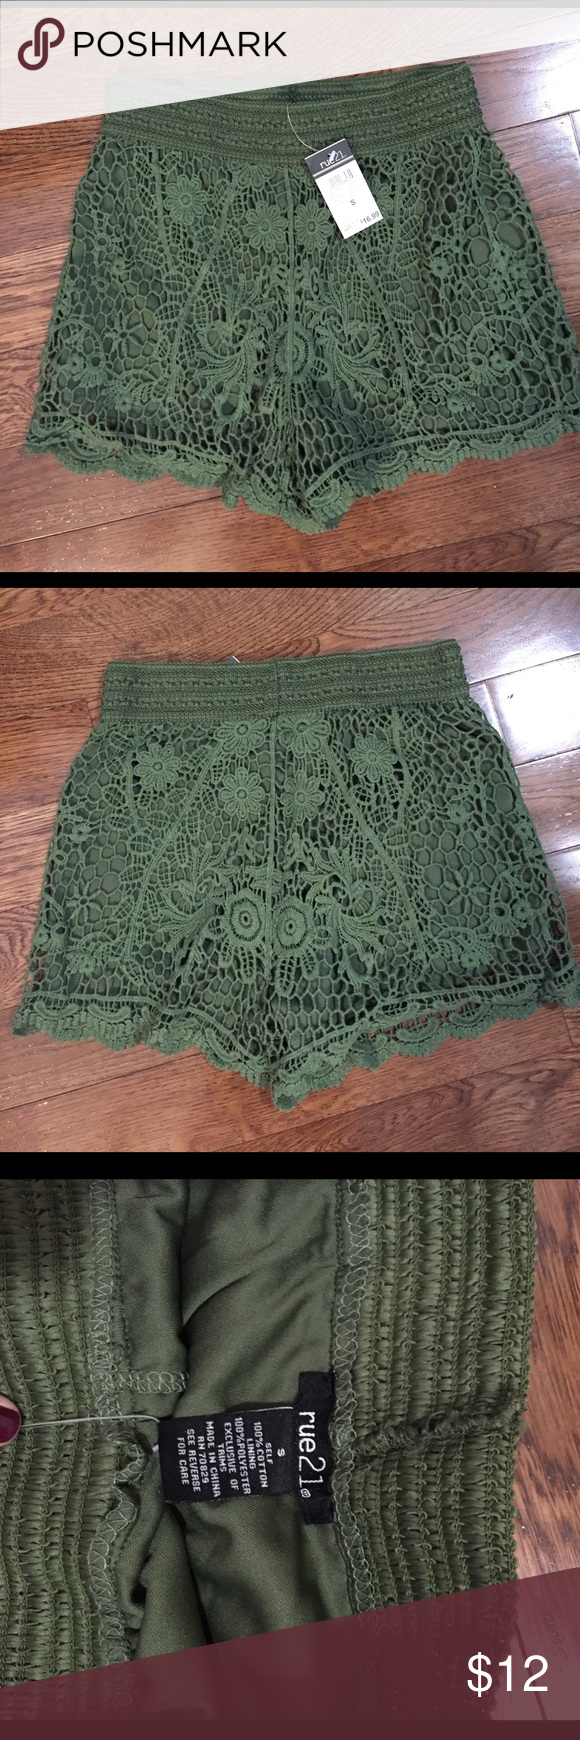 Olive green lace shorts Brand new! Super cute paired with a plain tank or tee, stretchy waistband Rue 21 Shorts